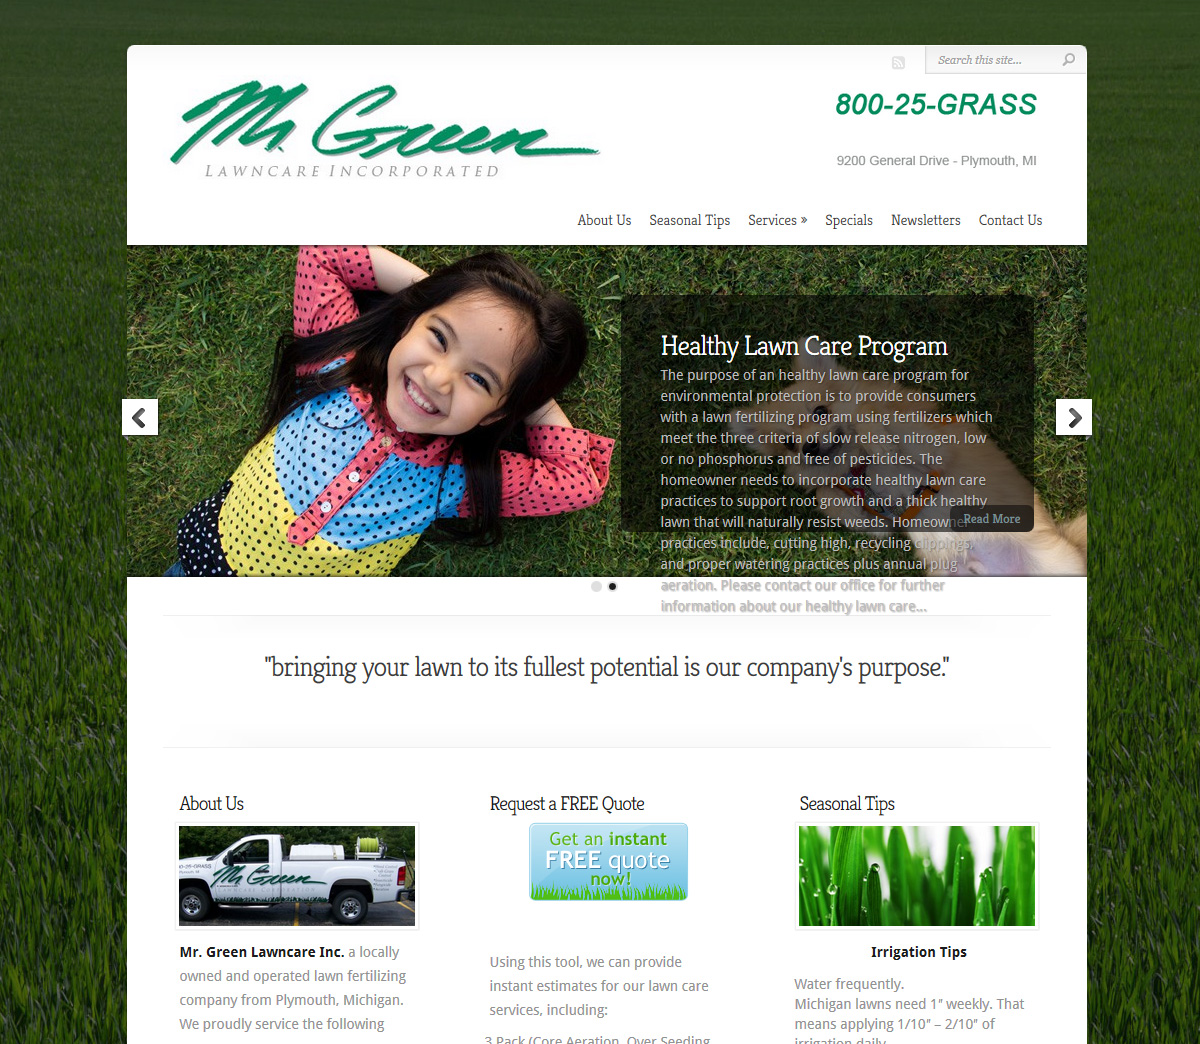 Mr. Green Lawncare